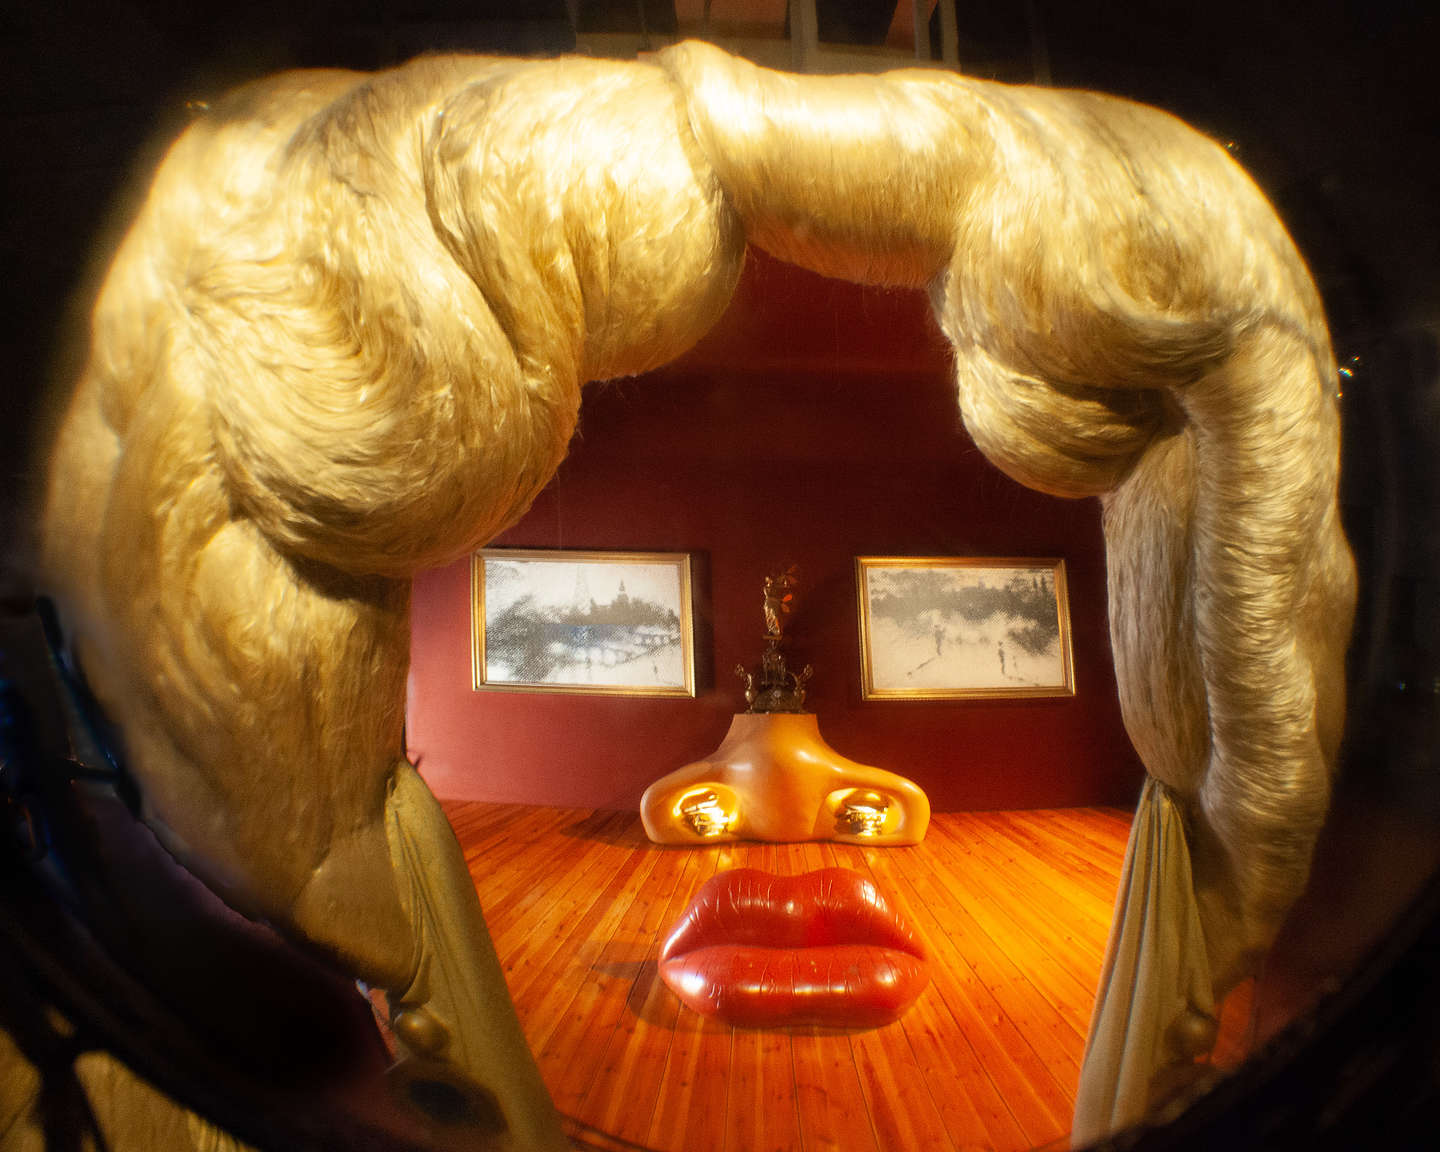 Mae West room with sofa lips, a fireplace nose, and two paintings for her eyes.